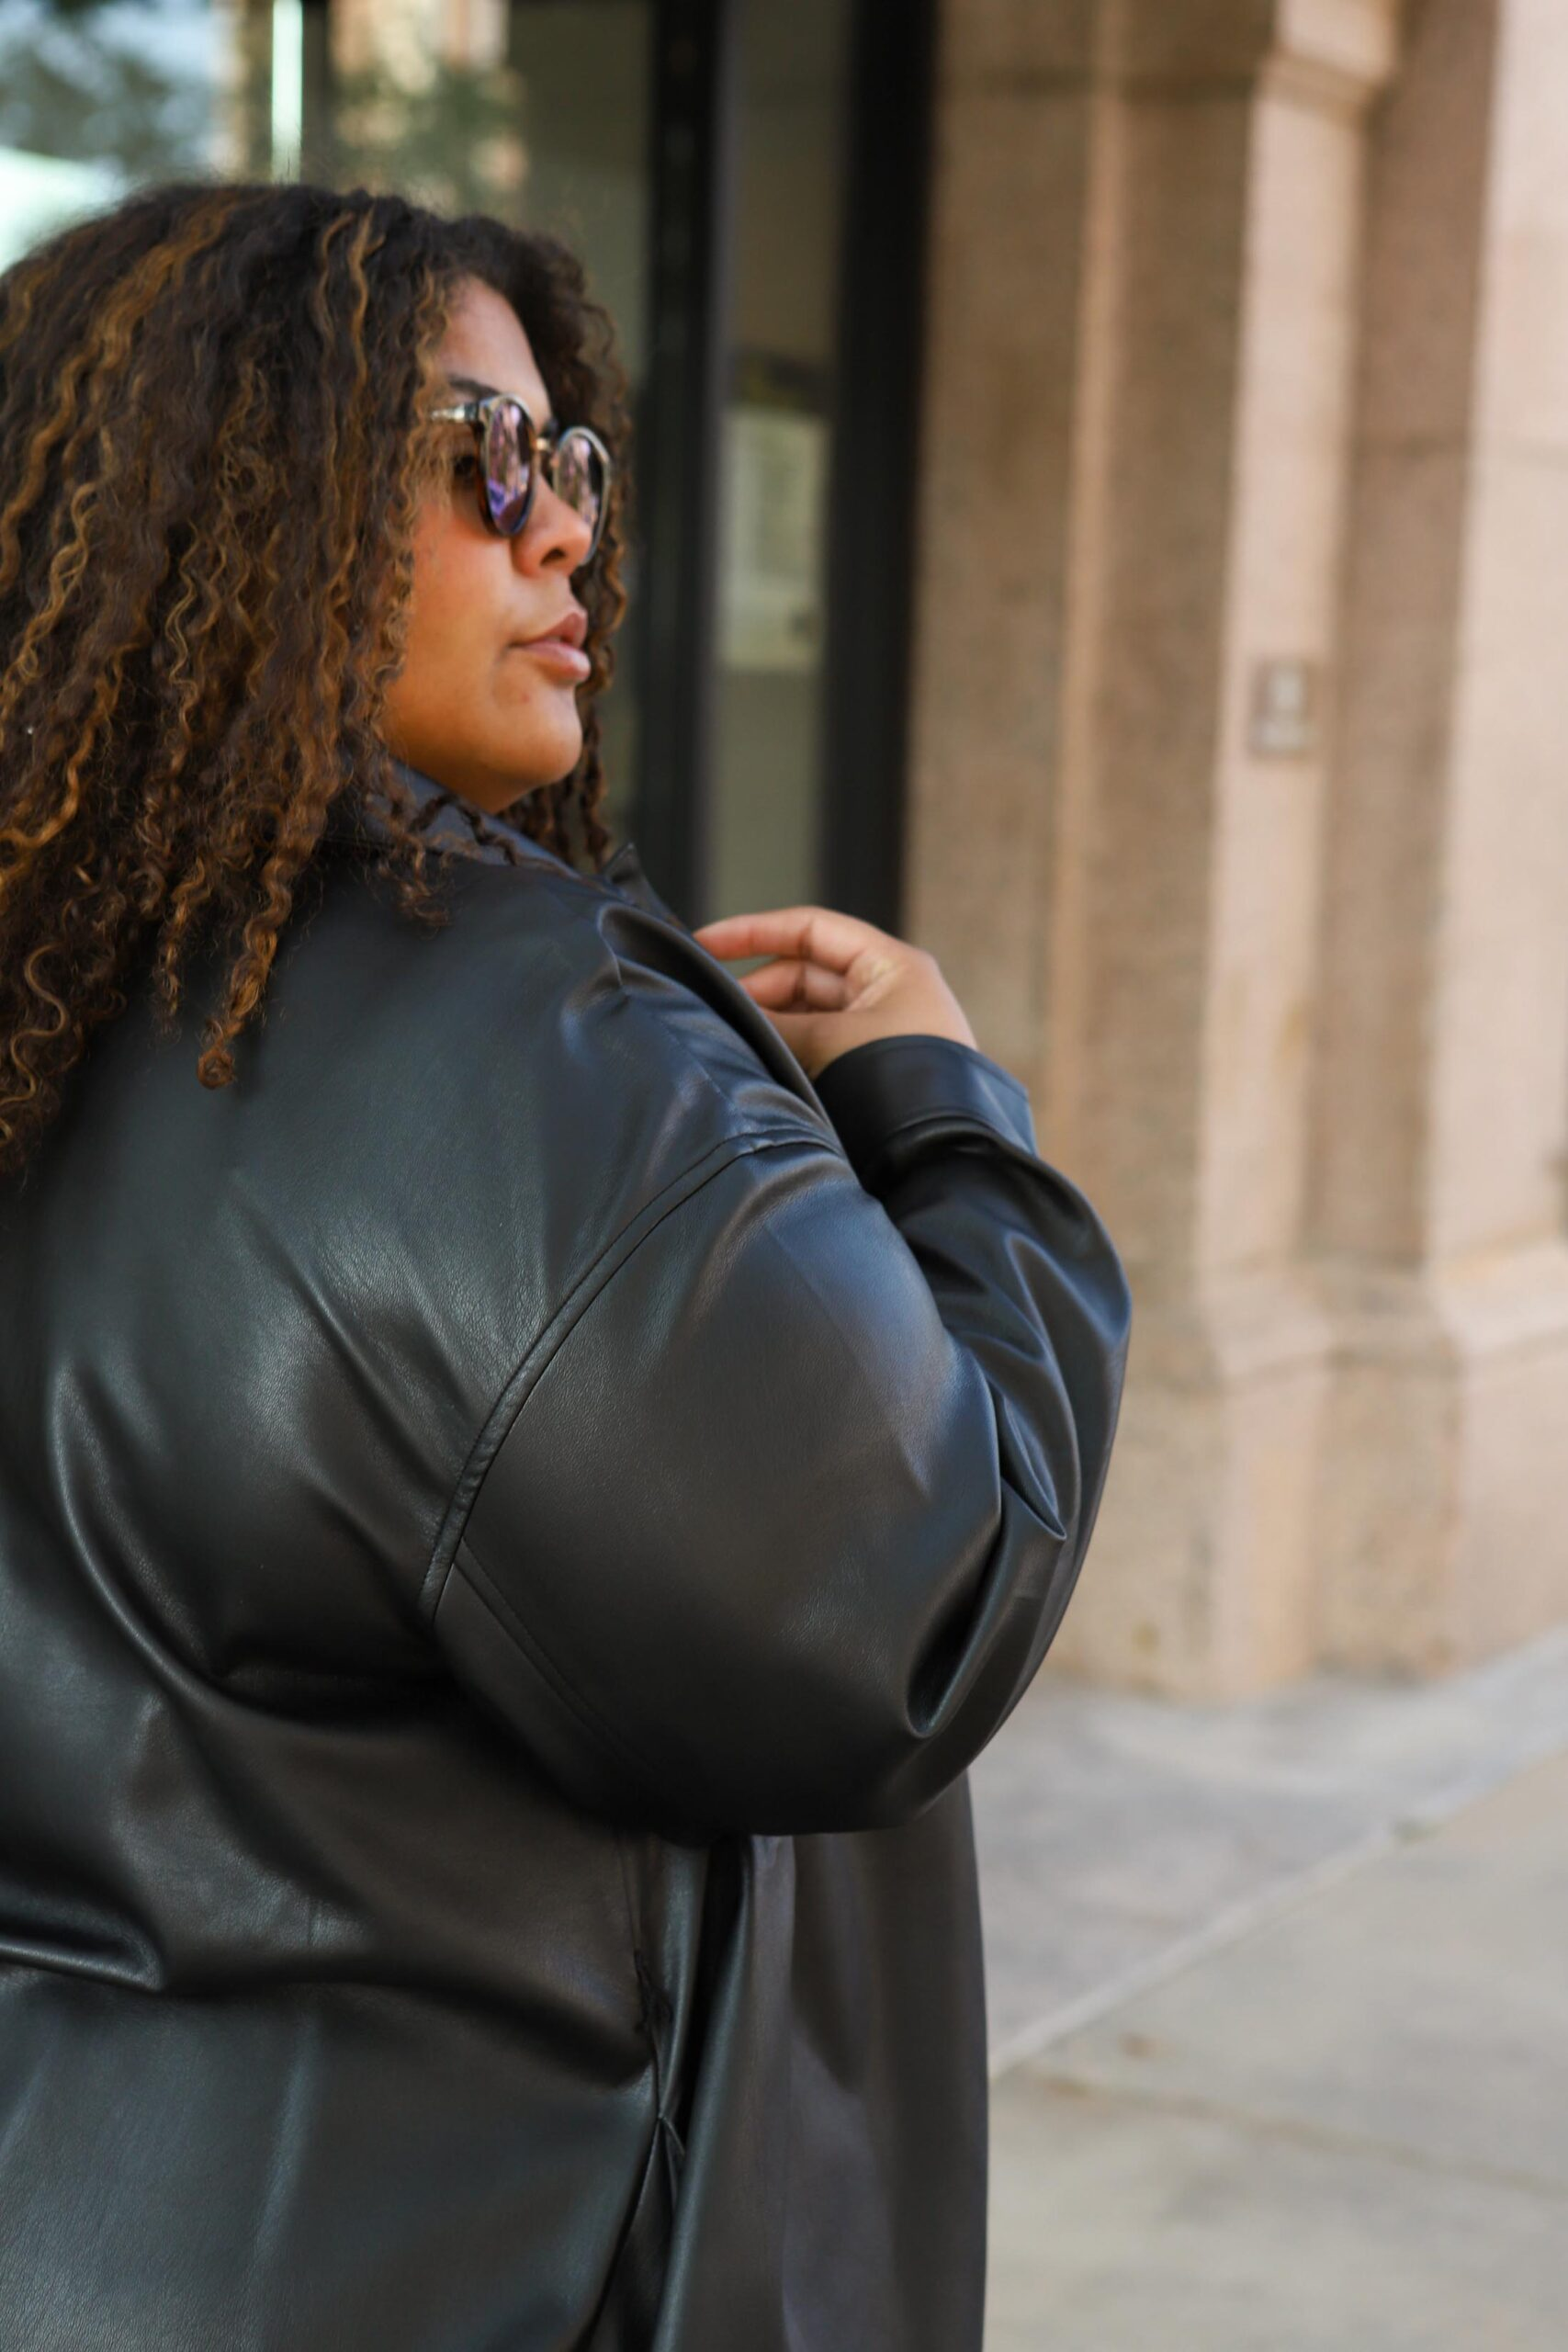 I love that jackets elevate every outfit! As soon as the temps drop, you'll find me rocking all the jackets: jean jackets, shirt jackets (shackets?), leather jackets & now..leather shackets!